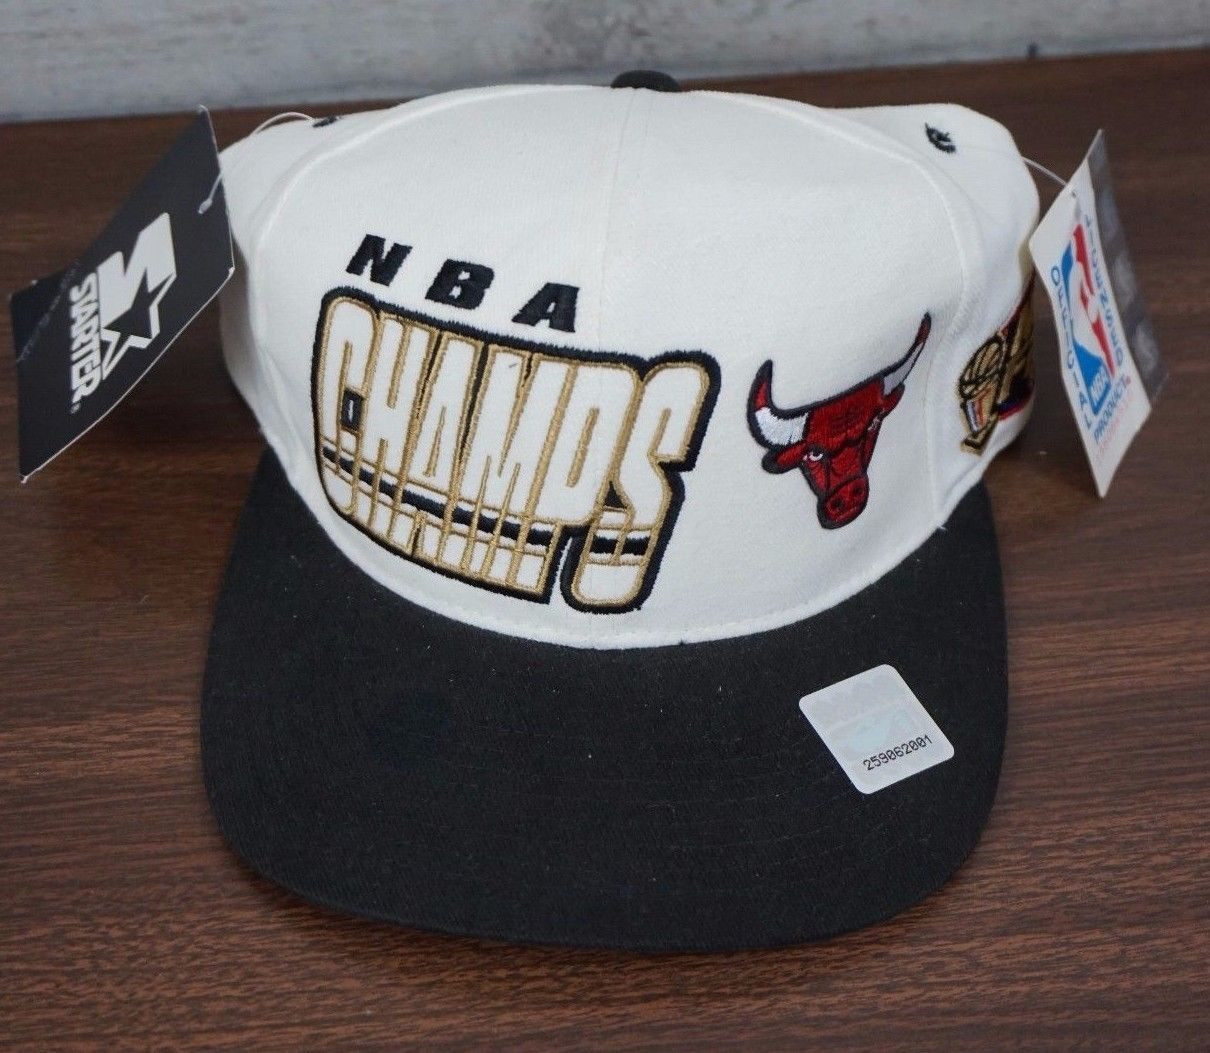 Chicago Bulls 1997 NBA Champs Champions Championship starter snapback hat cap